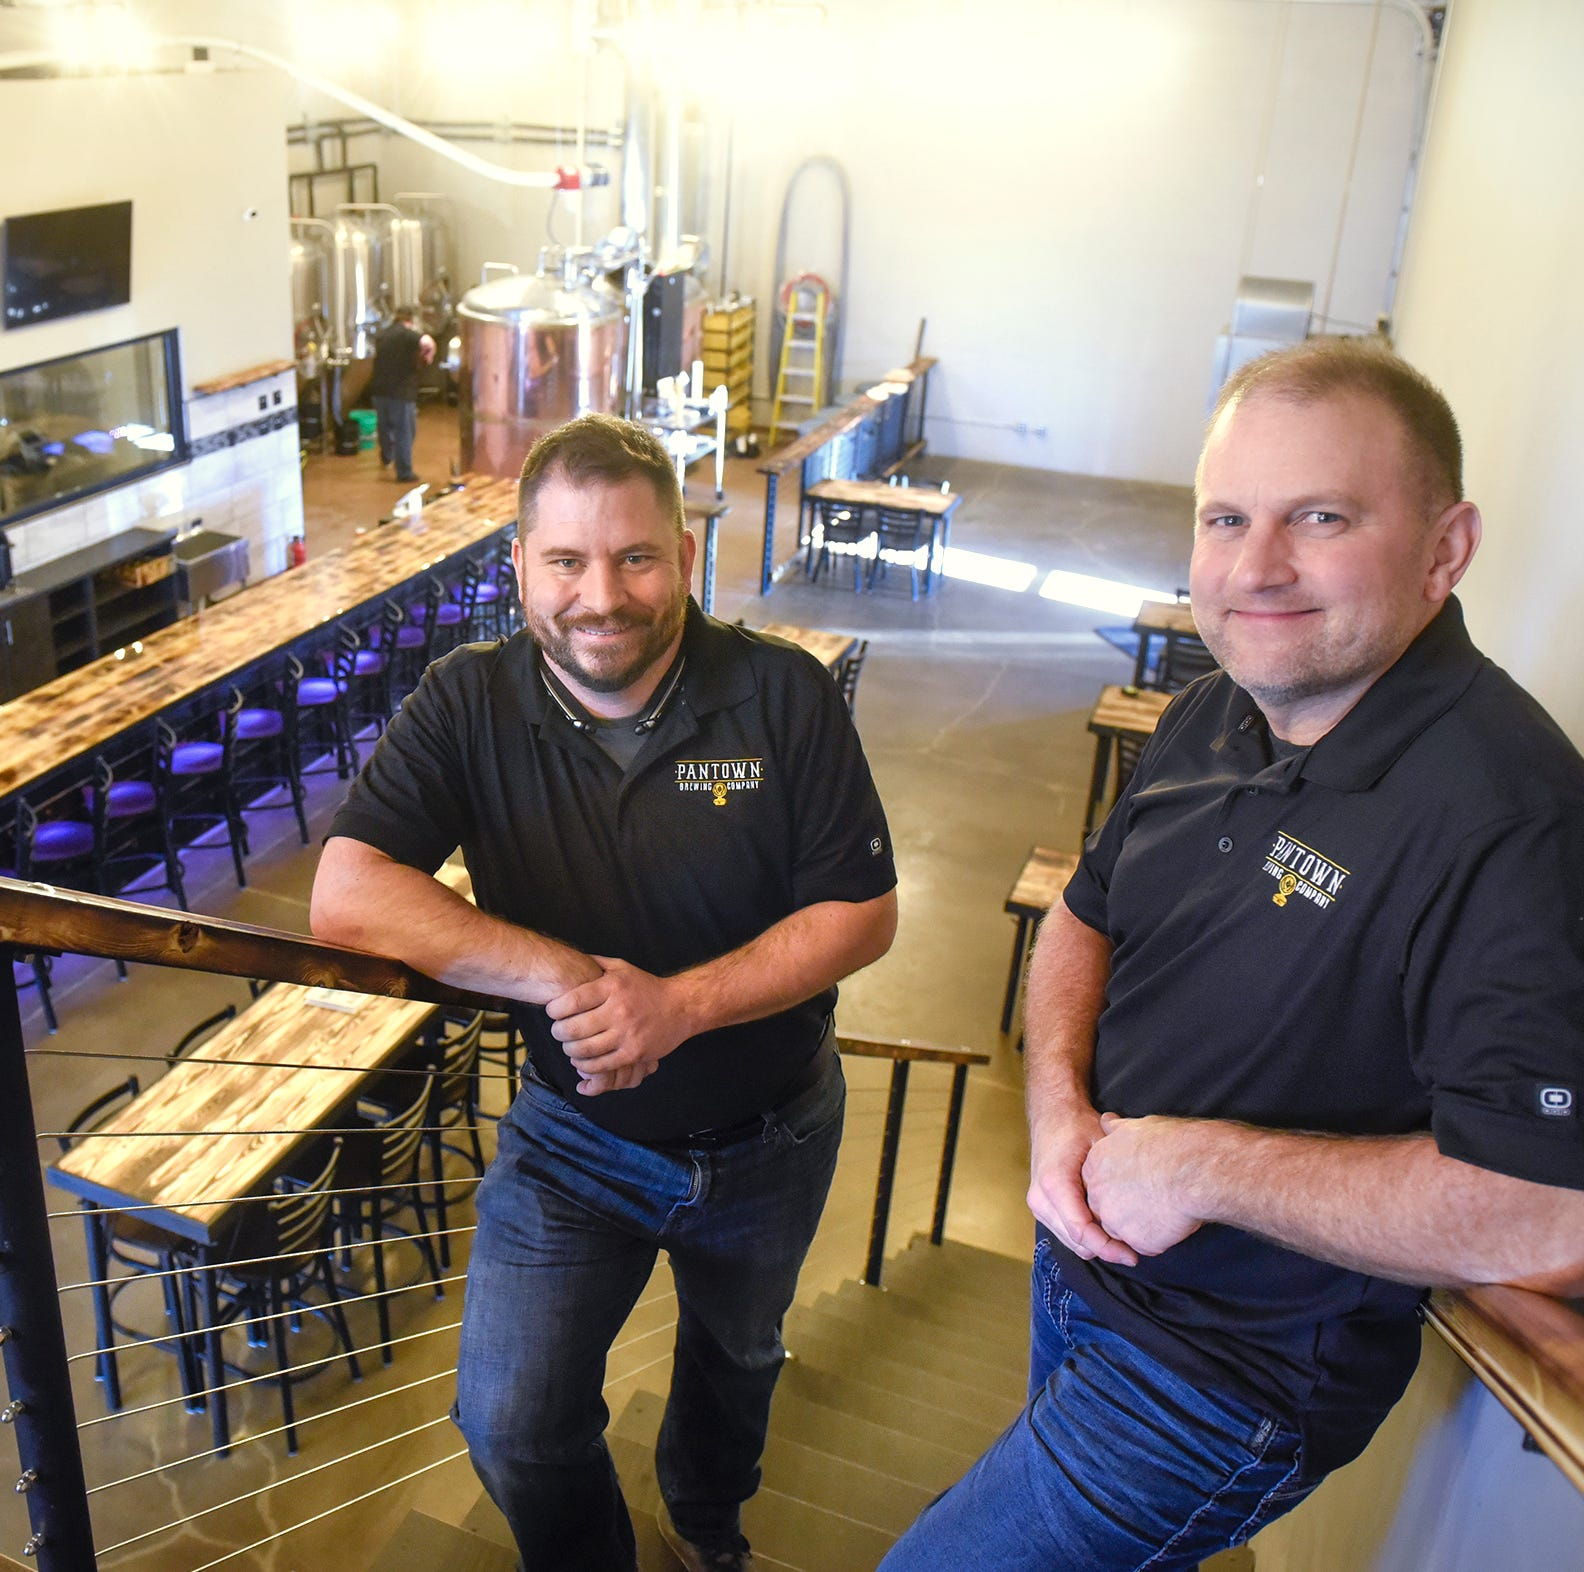 What to expect from Pantown Brewing Company